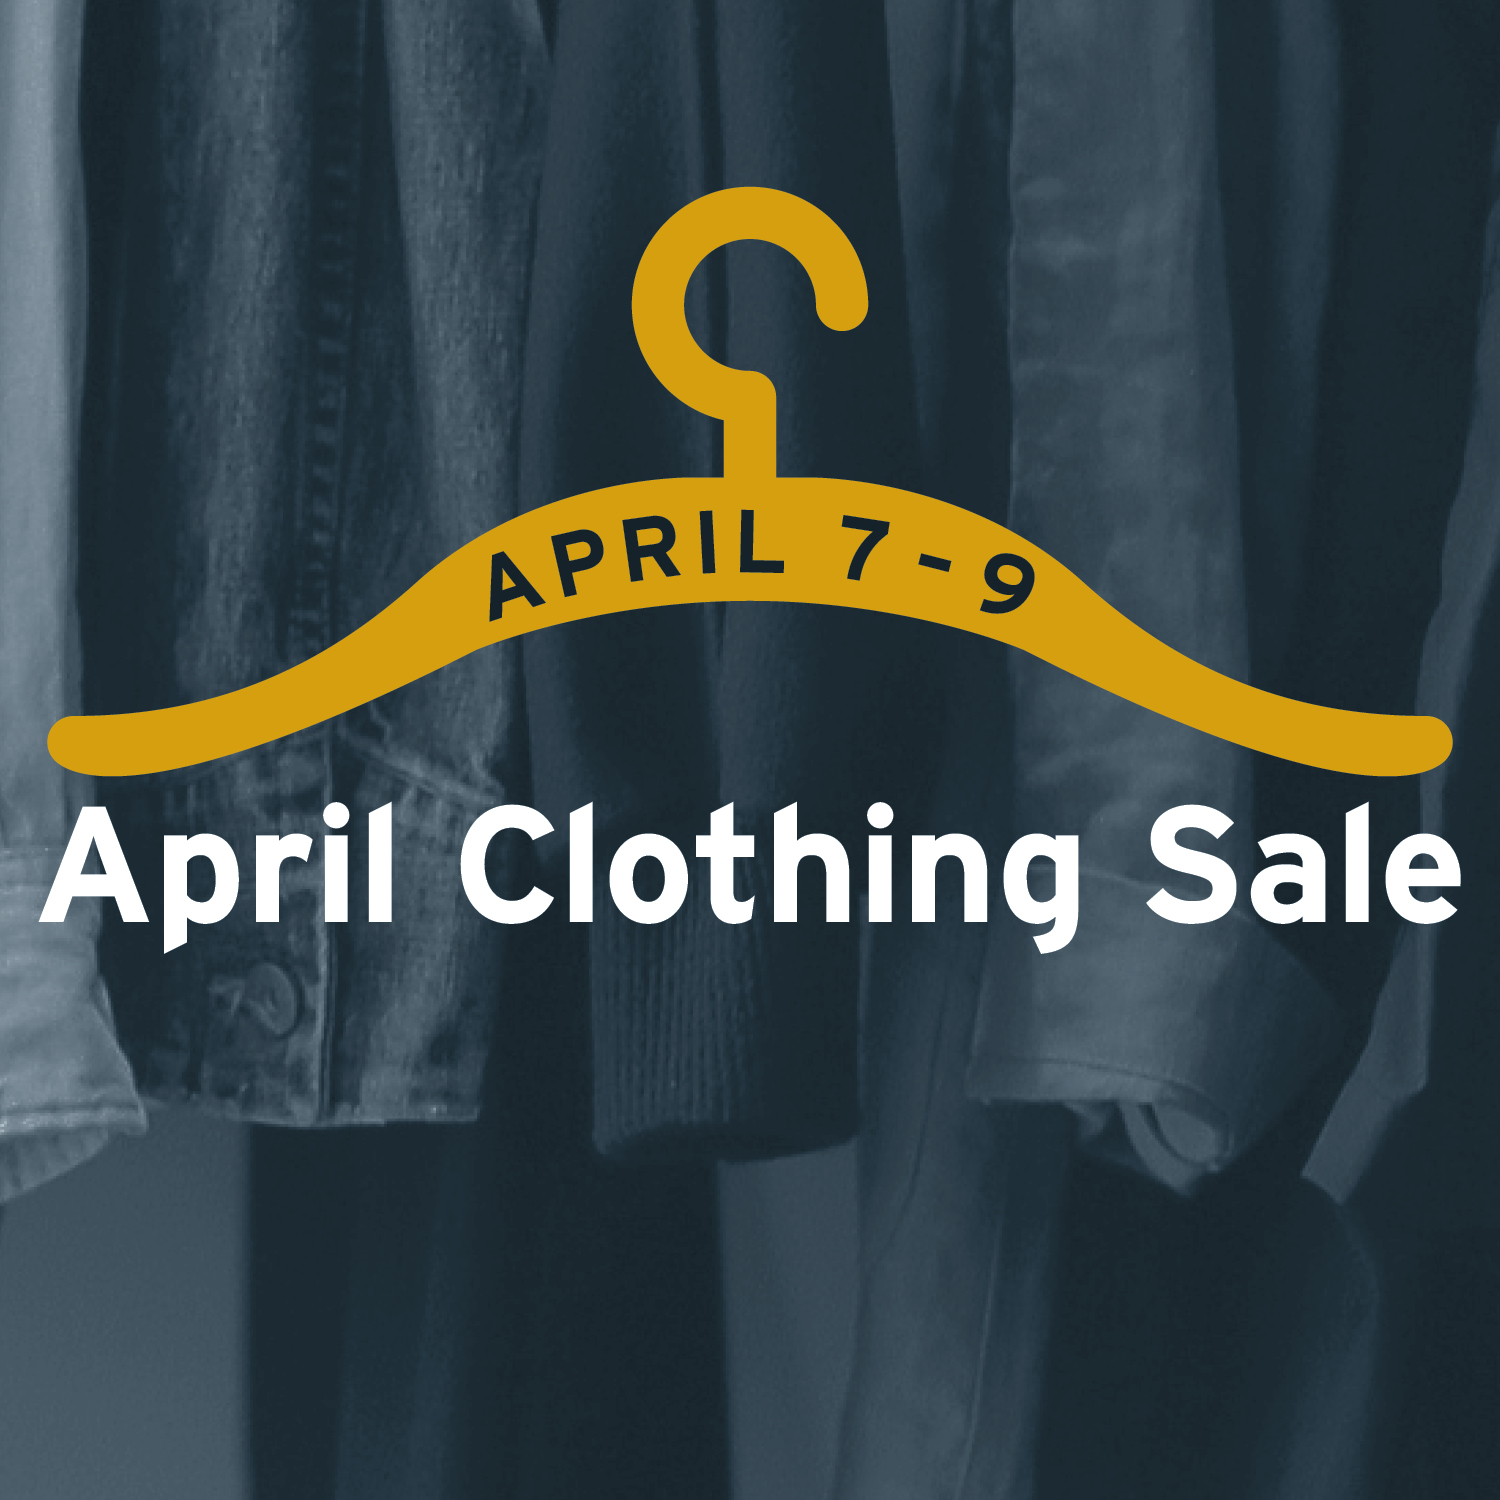 clothingsale_Feb23.jpg